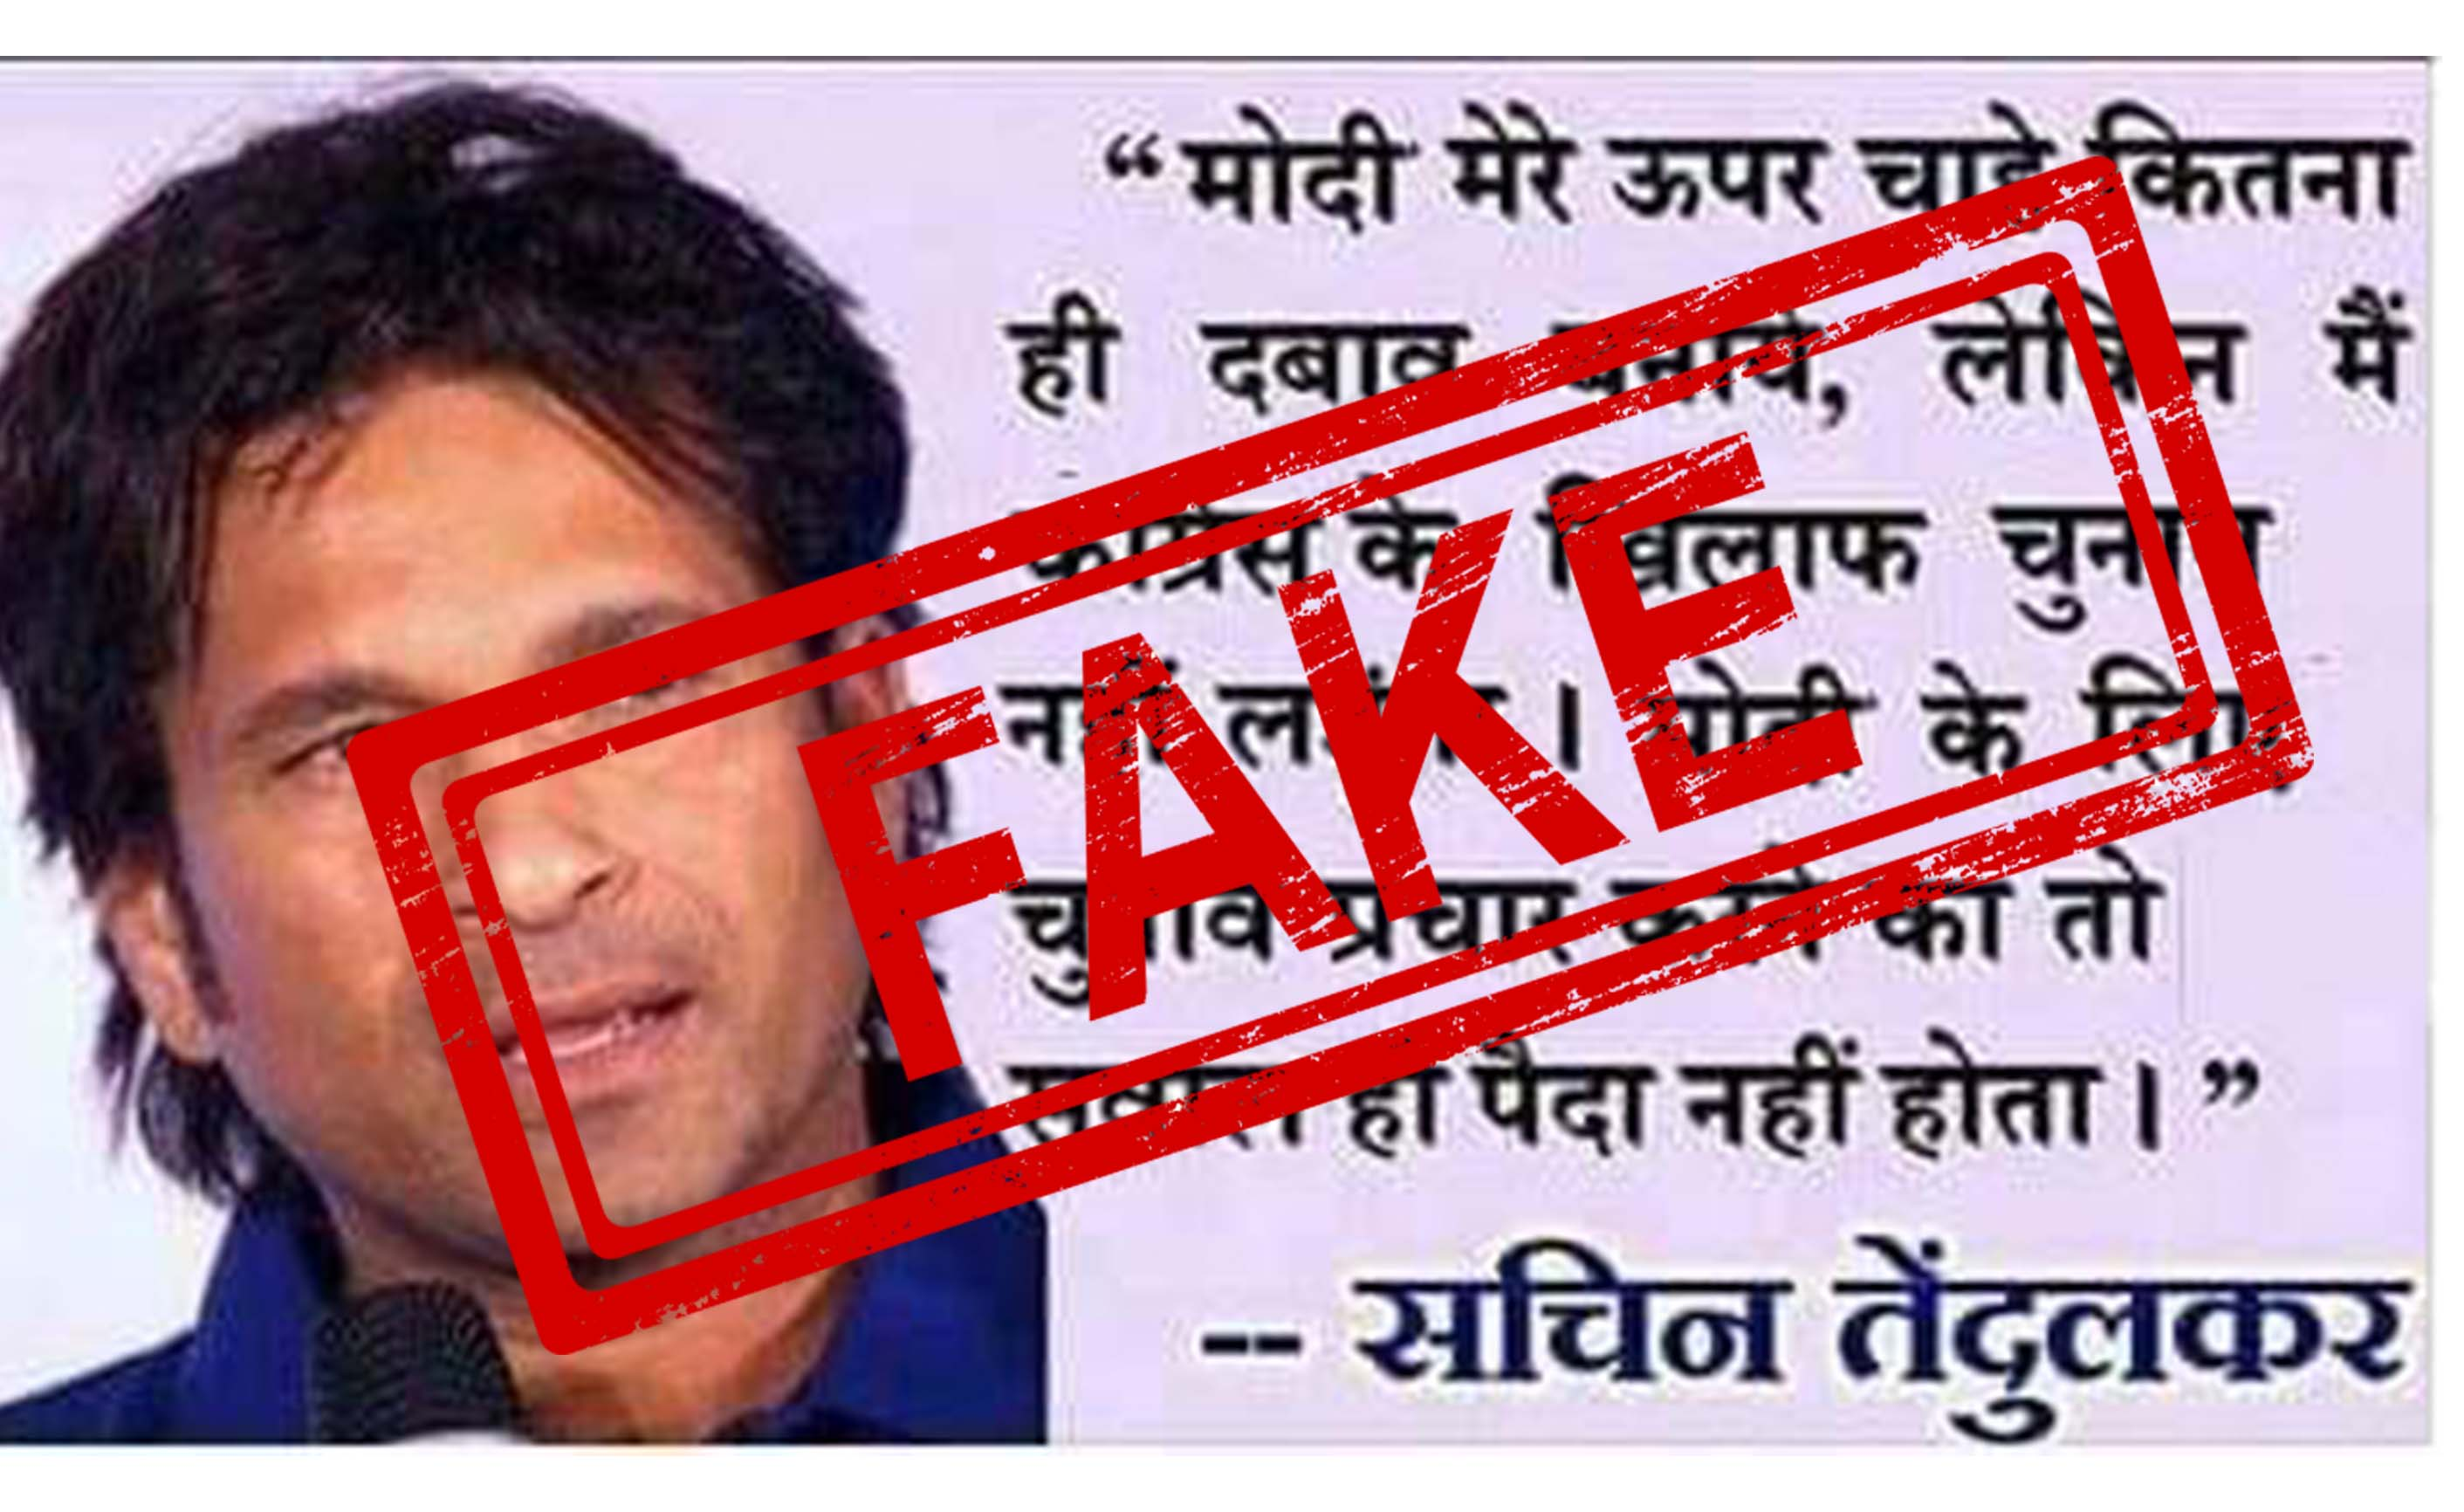 Sachin Tendulkar, Cricket, Cricketer, Elections, PM Modi, Narendra Modi, India, Congress, NewsMobile, Mobile, News, Fact Check, Fact Checker, Fake